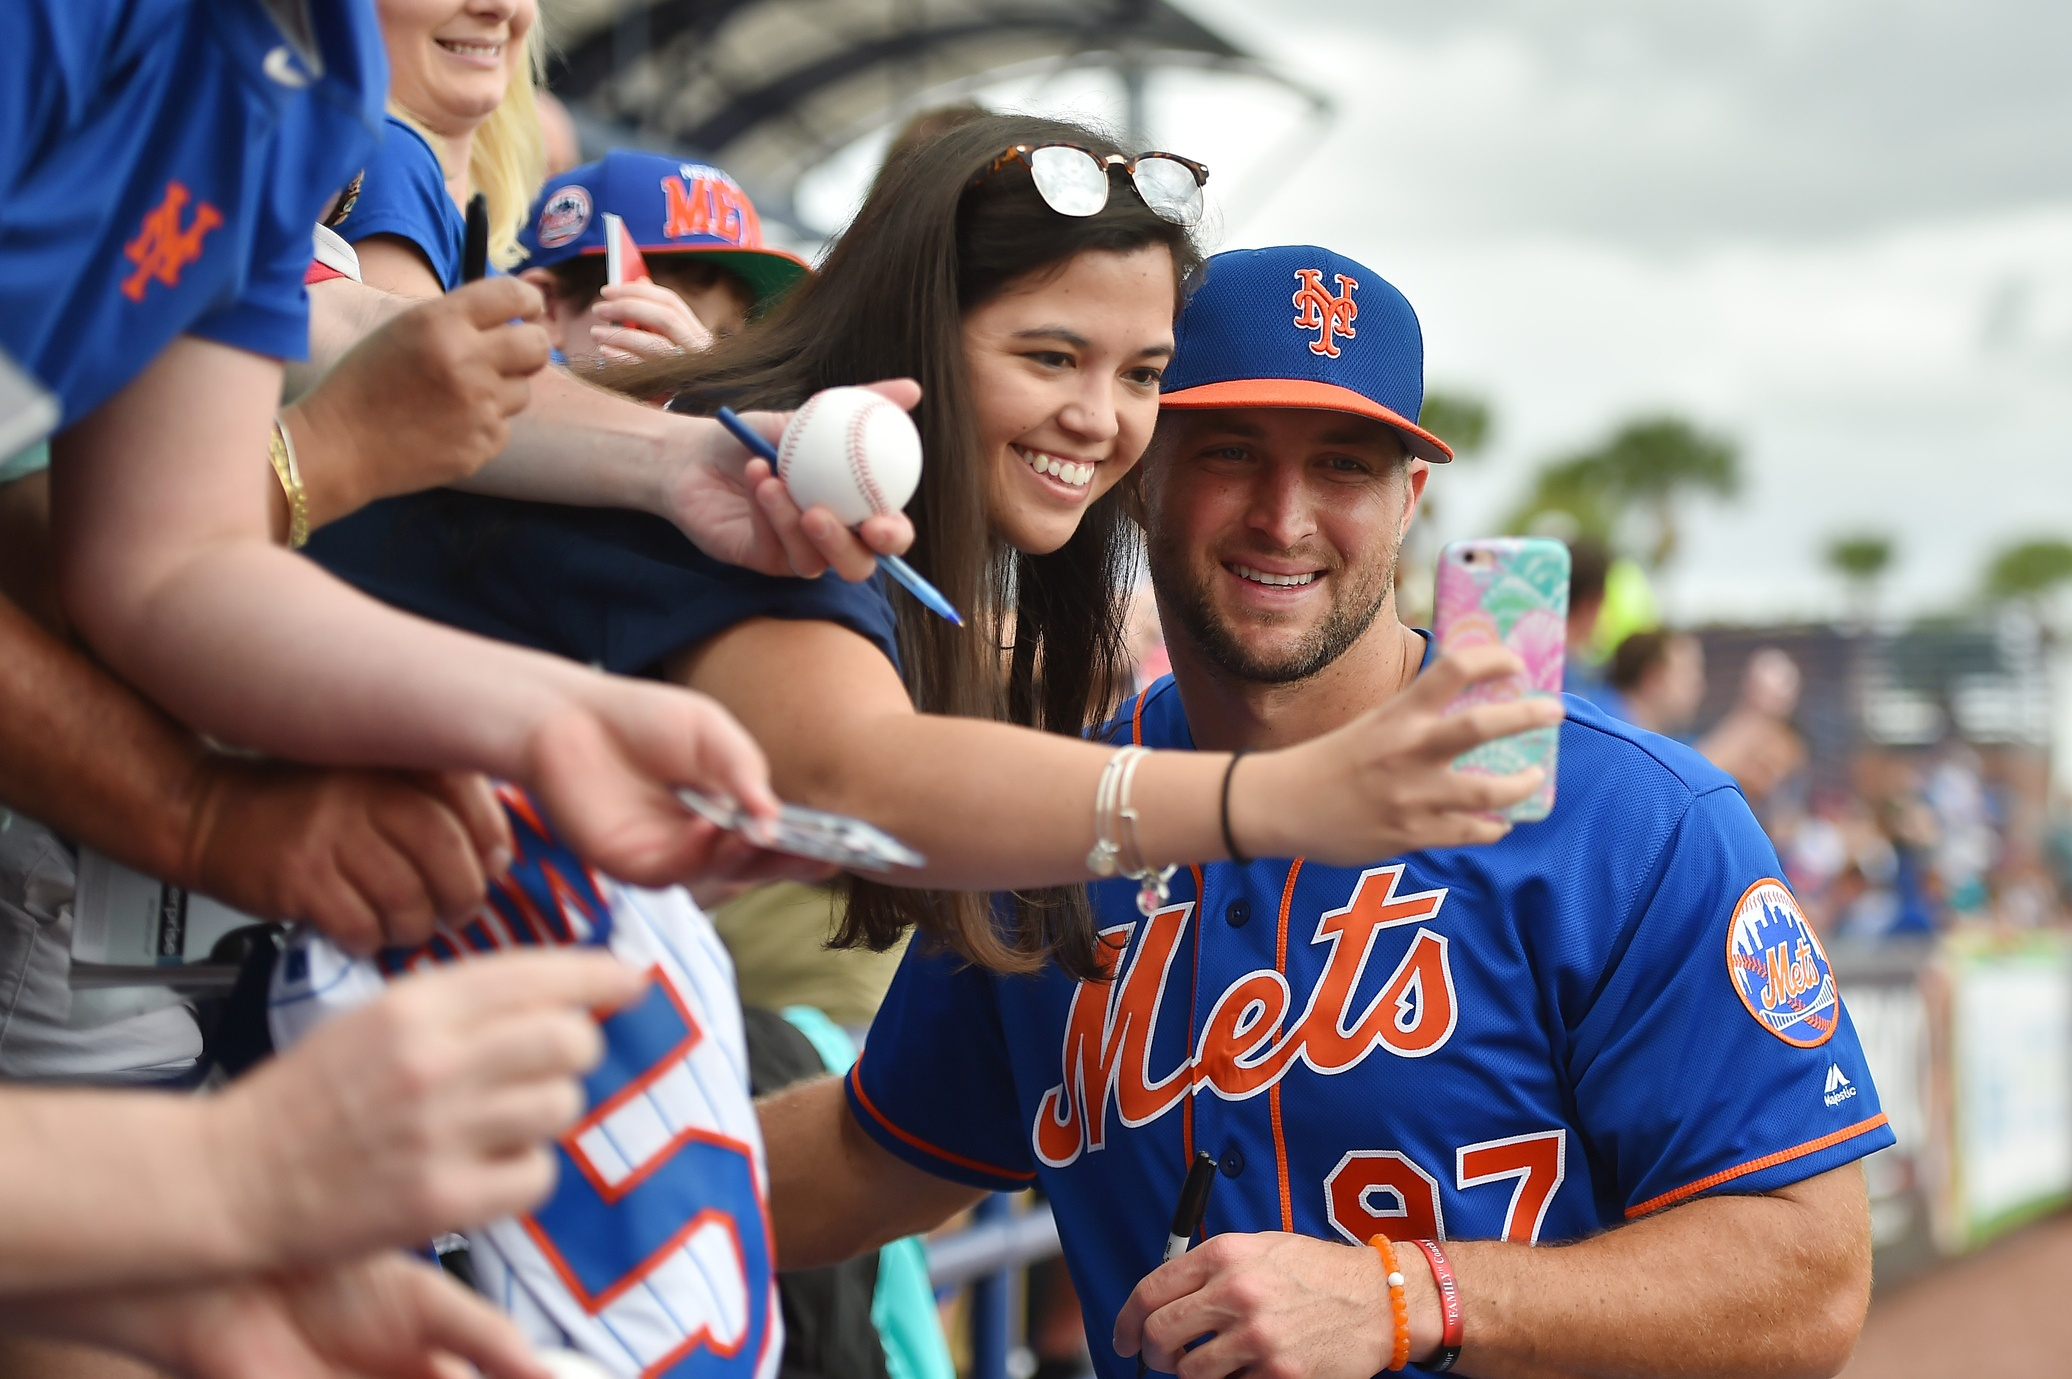 Mar 8, 2017; Port St. Lucie, FL, USA; New York Mets designated hitter Tim Tebow (97) takes a selfie picture with a fan prior to the game against the Boston Red Sox at First Data Field. Mandatory Credit: Jasen Vinlove-USA TODAY Sports